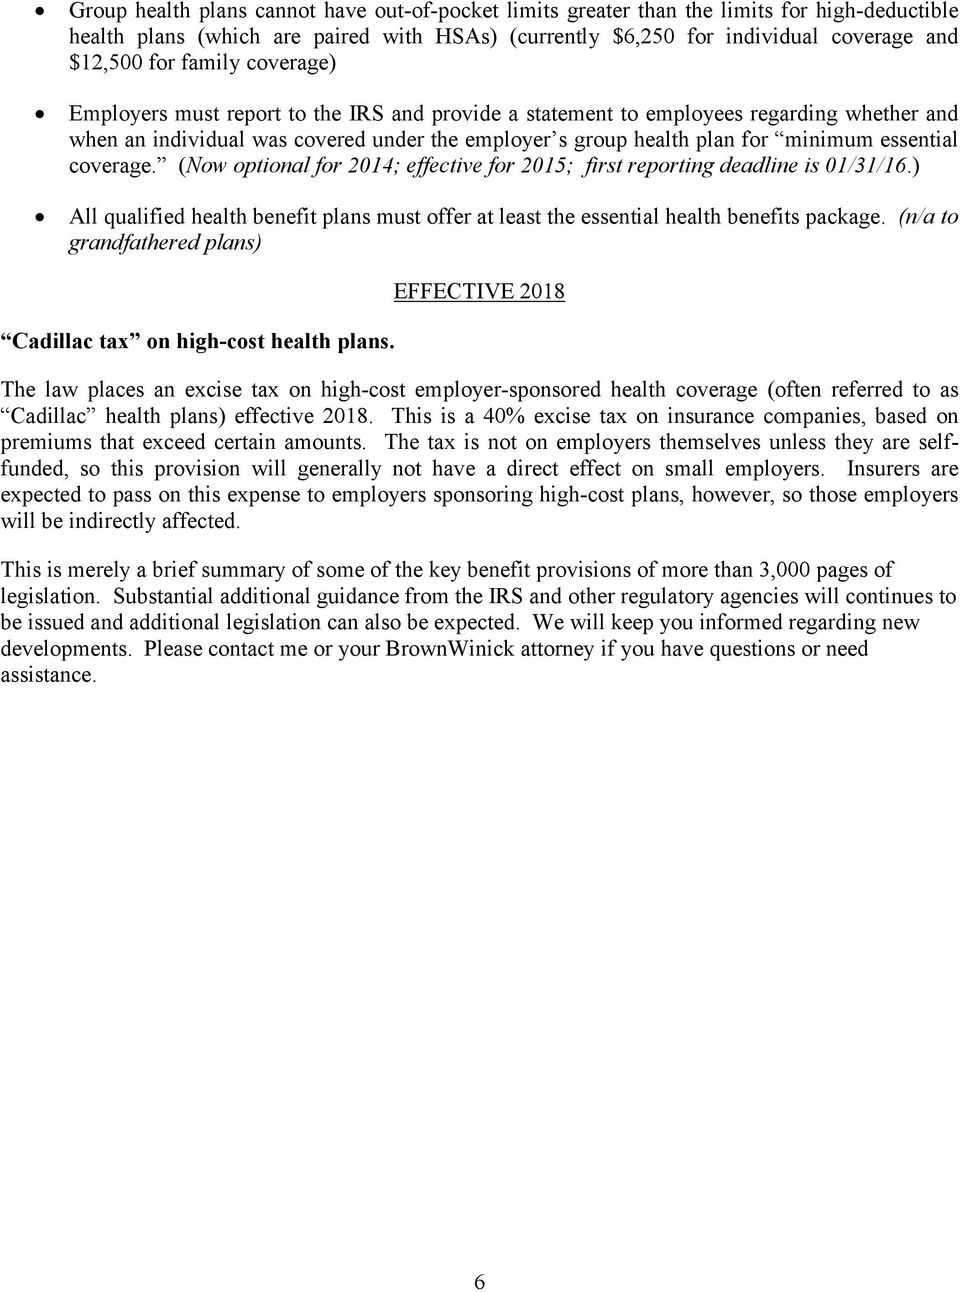 essential coverage. (Now optional for 2014; effective for 2015; first reporting deadline is 01/31/16.) All qualified health benefit plans must offer at least the essential health benefits package.